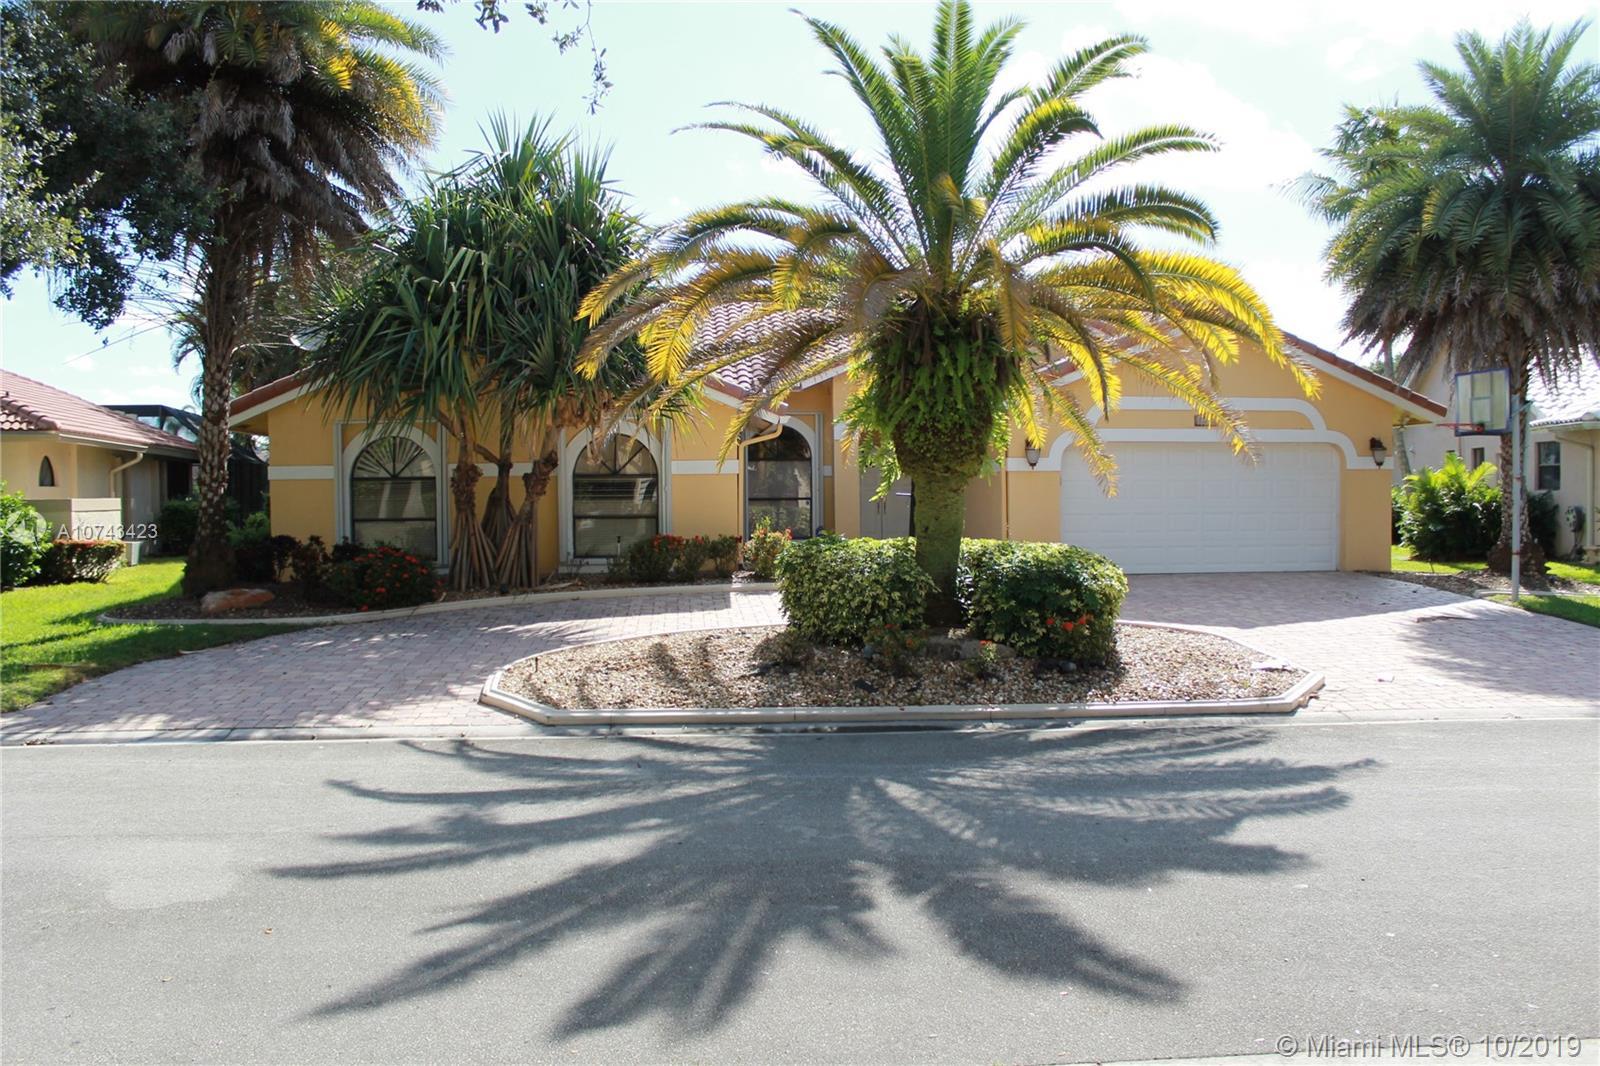 5241 NW 89th Dr, Coral Springs, FL 33067